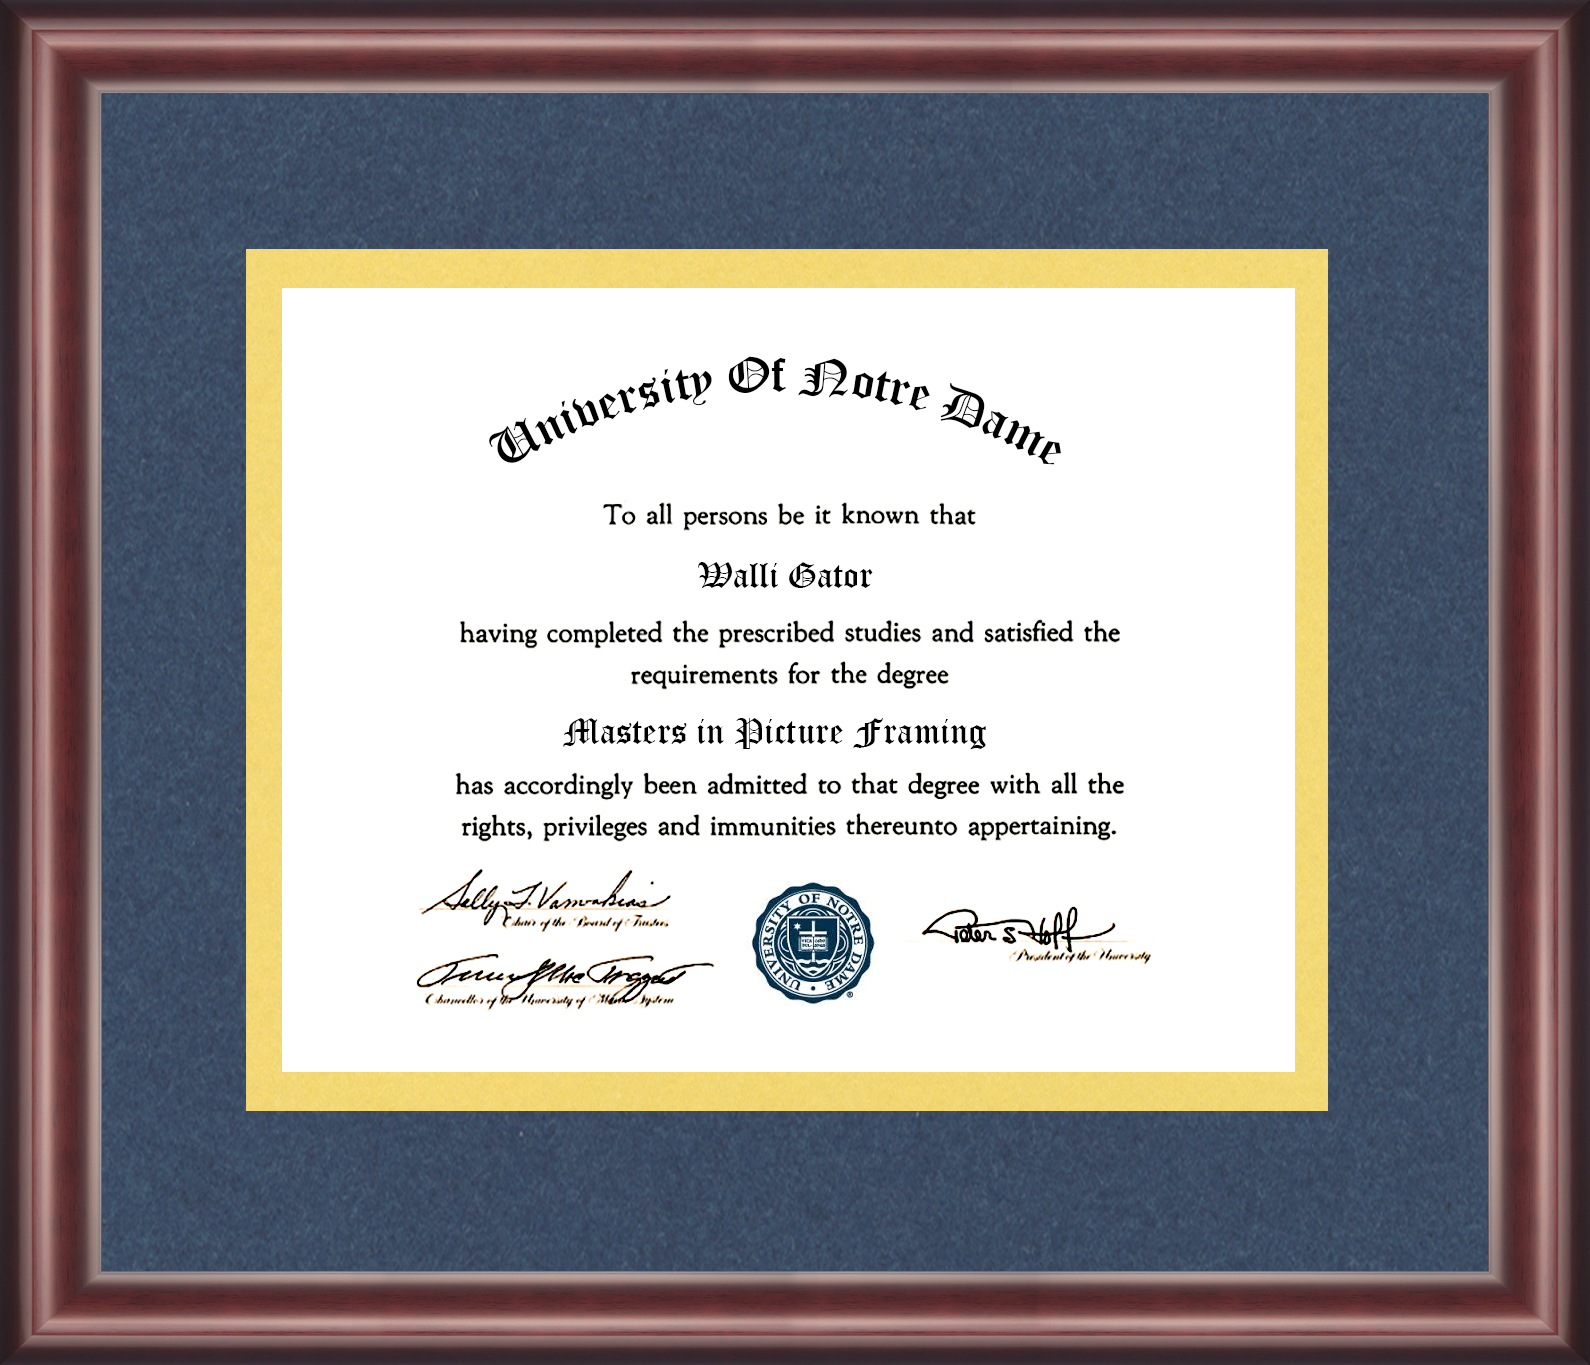 University Of Notre Dame Diploma Frame Talking Walls